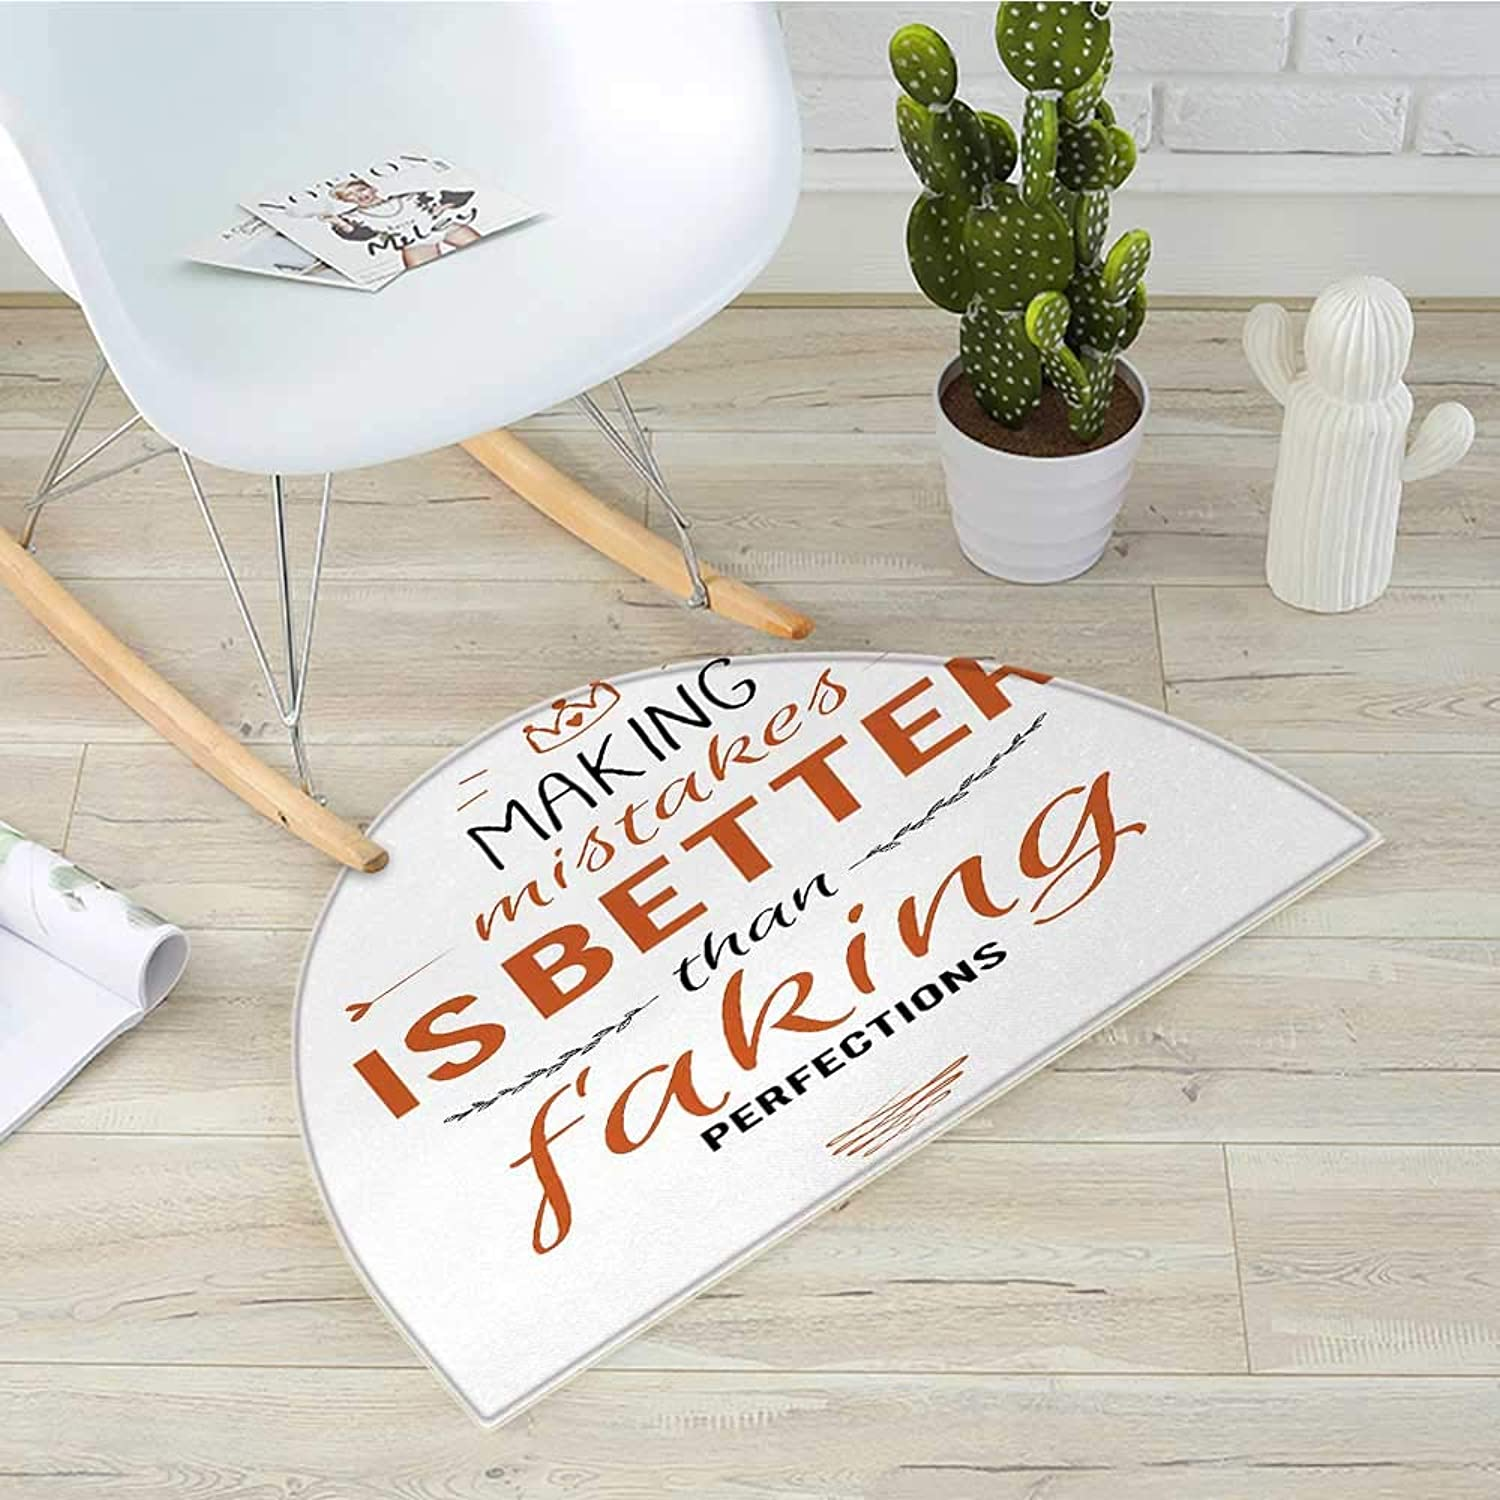 Quote Half Round Door mats Typographic Phrase Making Mistakes is Better Than Faking Perfections Bathroom Mat H 39.3  xD 59  Cinnamon Black and White